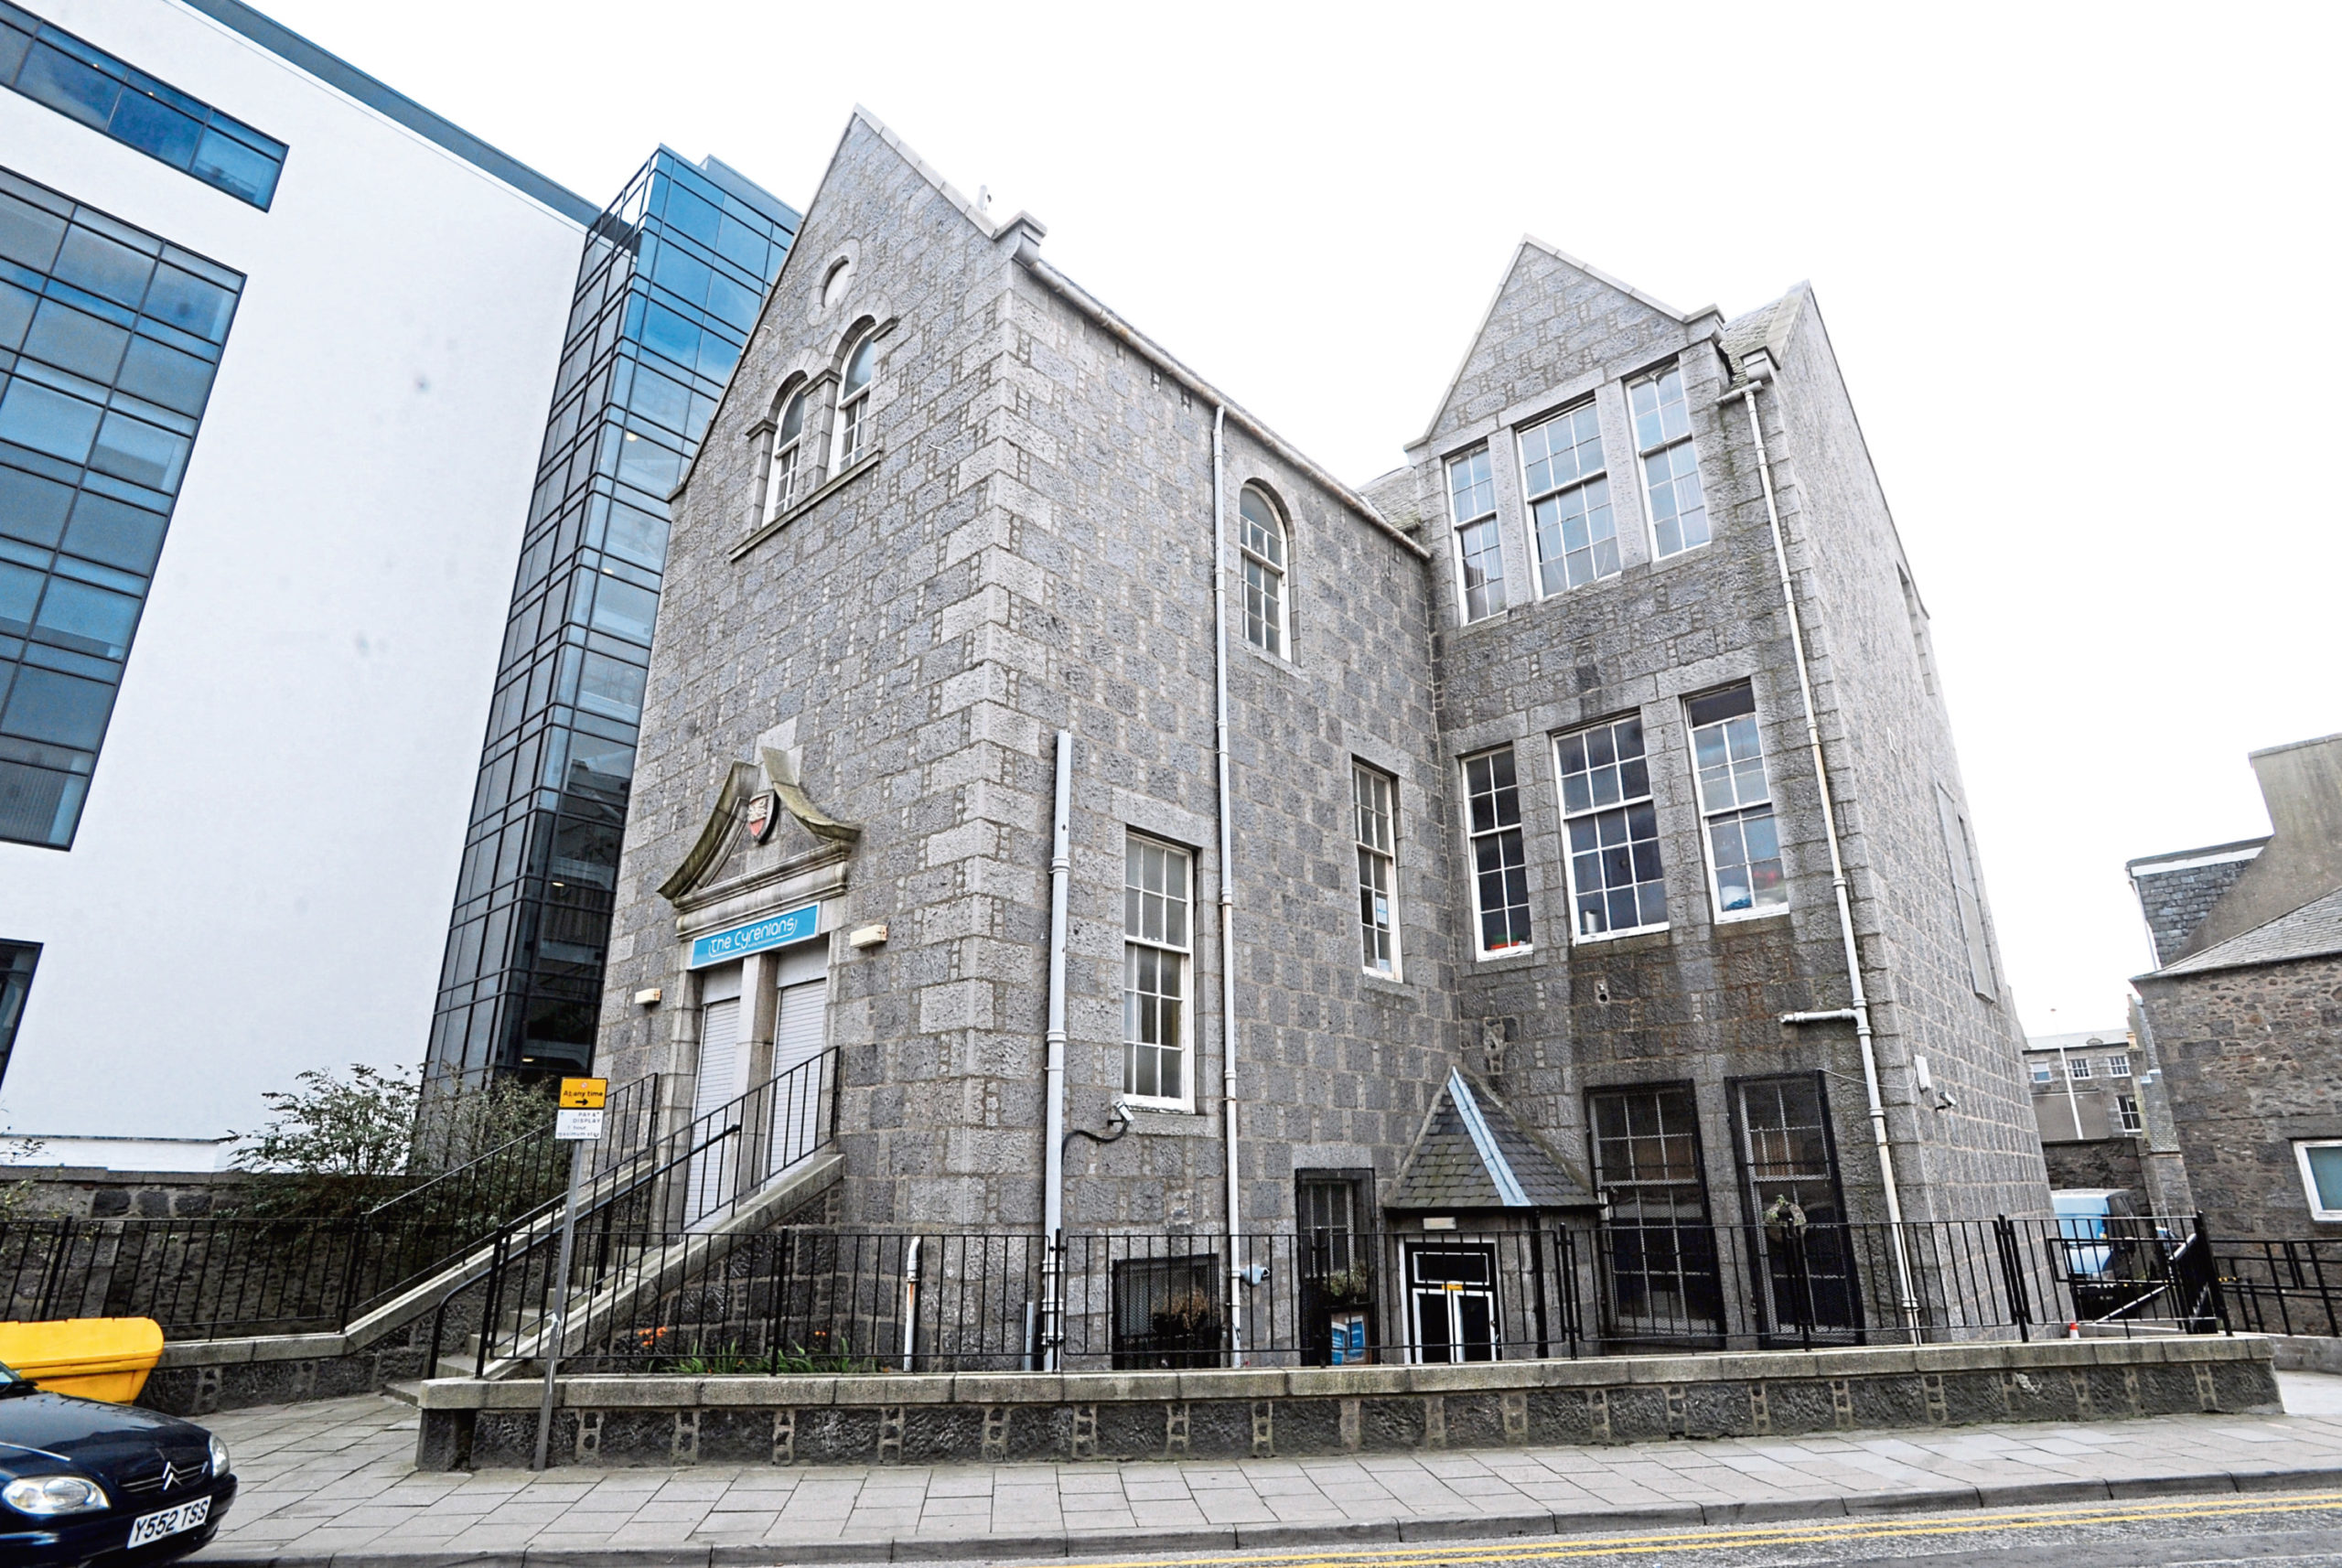 Aberdeen Cyrenians is appealing for people to donate books for its vulnerable adults